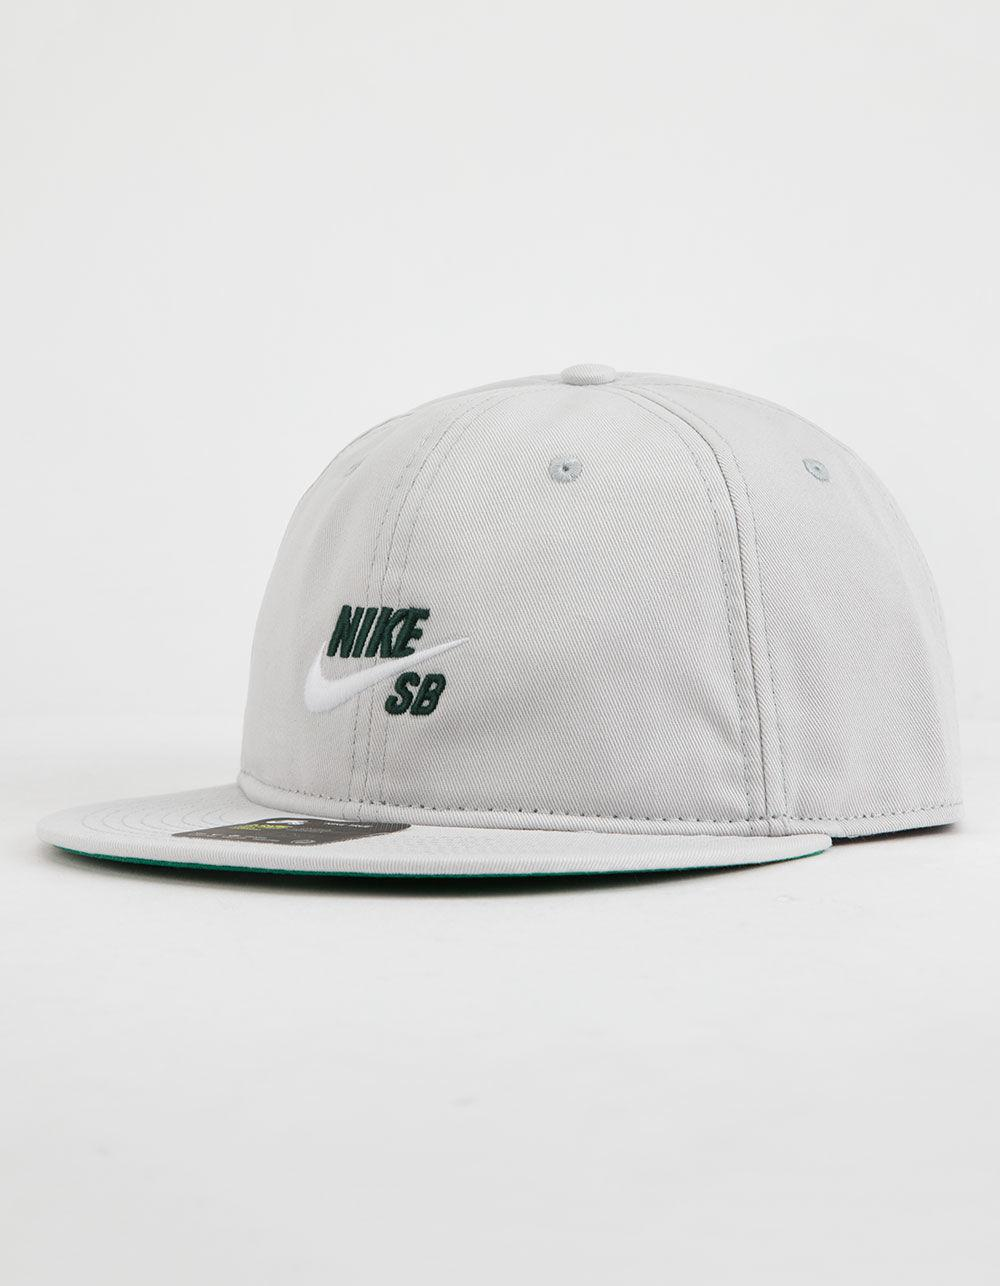 3bb66e00a9a41 Lyst - Nike Vintage Pro Mens Gray Snapback Hat in Gray for Men